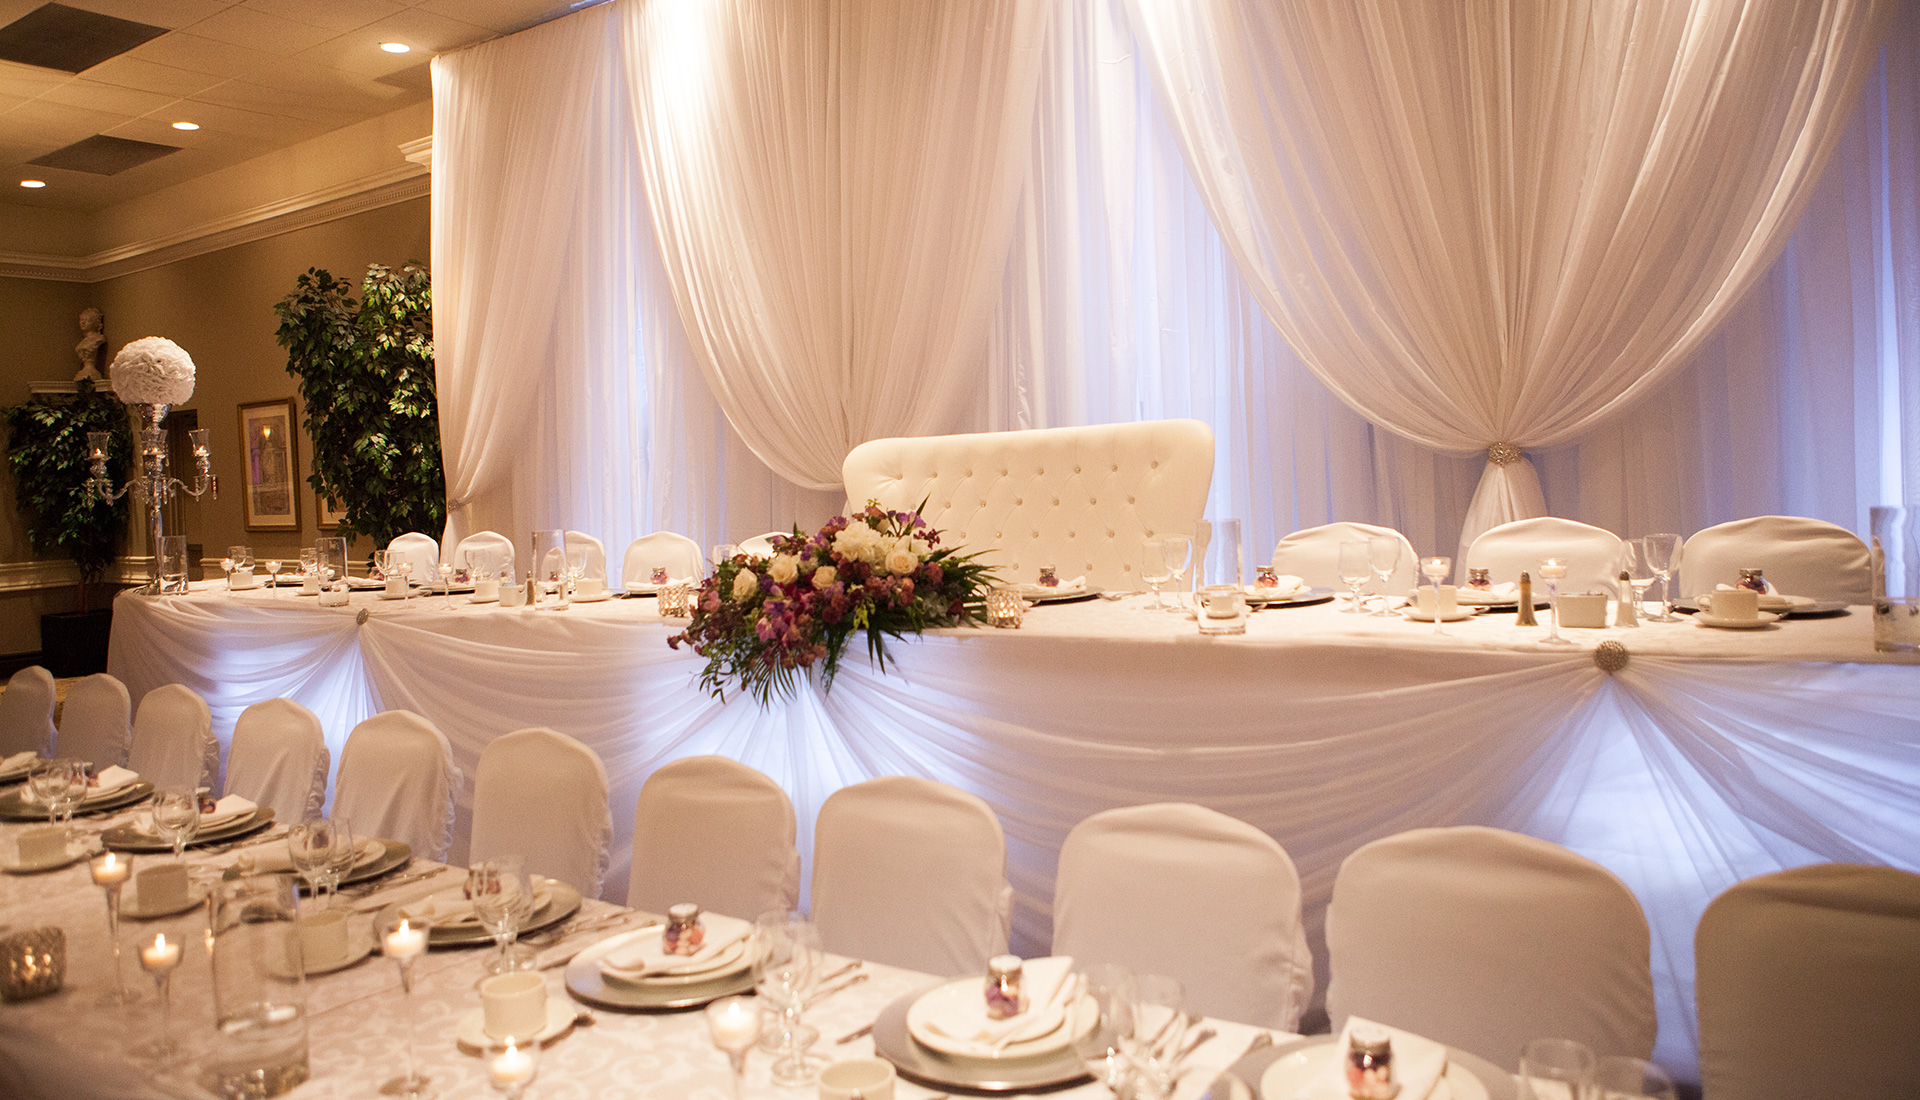 Wedding Decoration Rentals Hamilton Niagara Falls Burlington